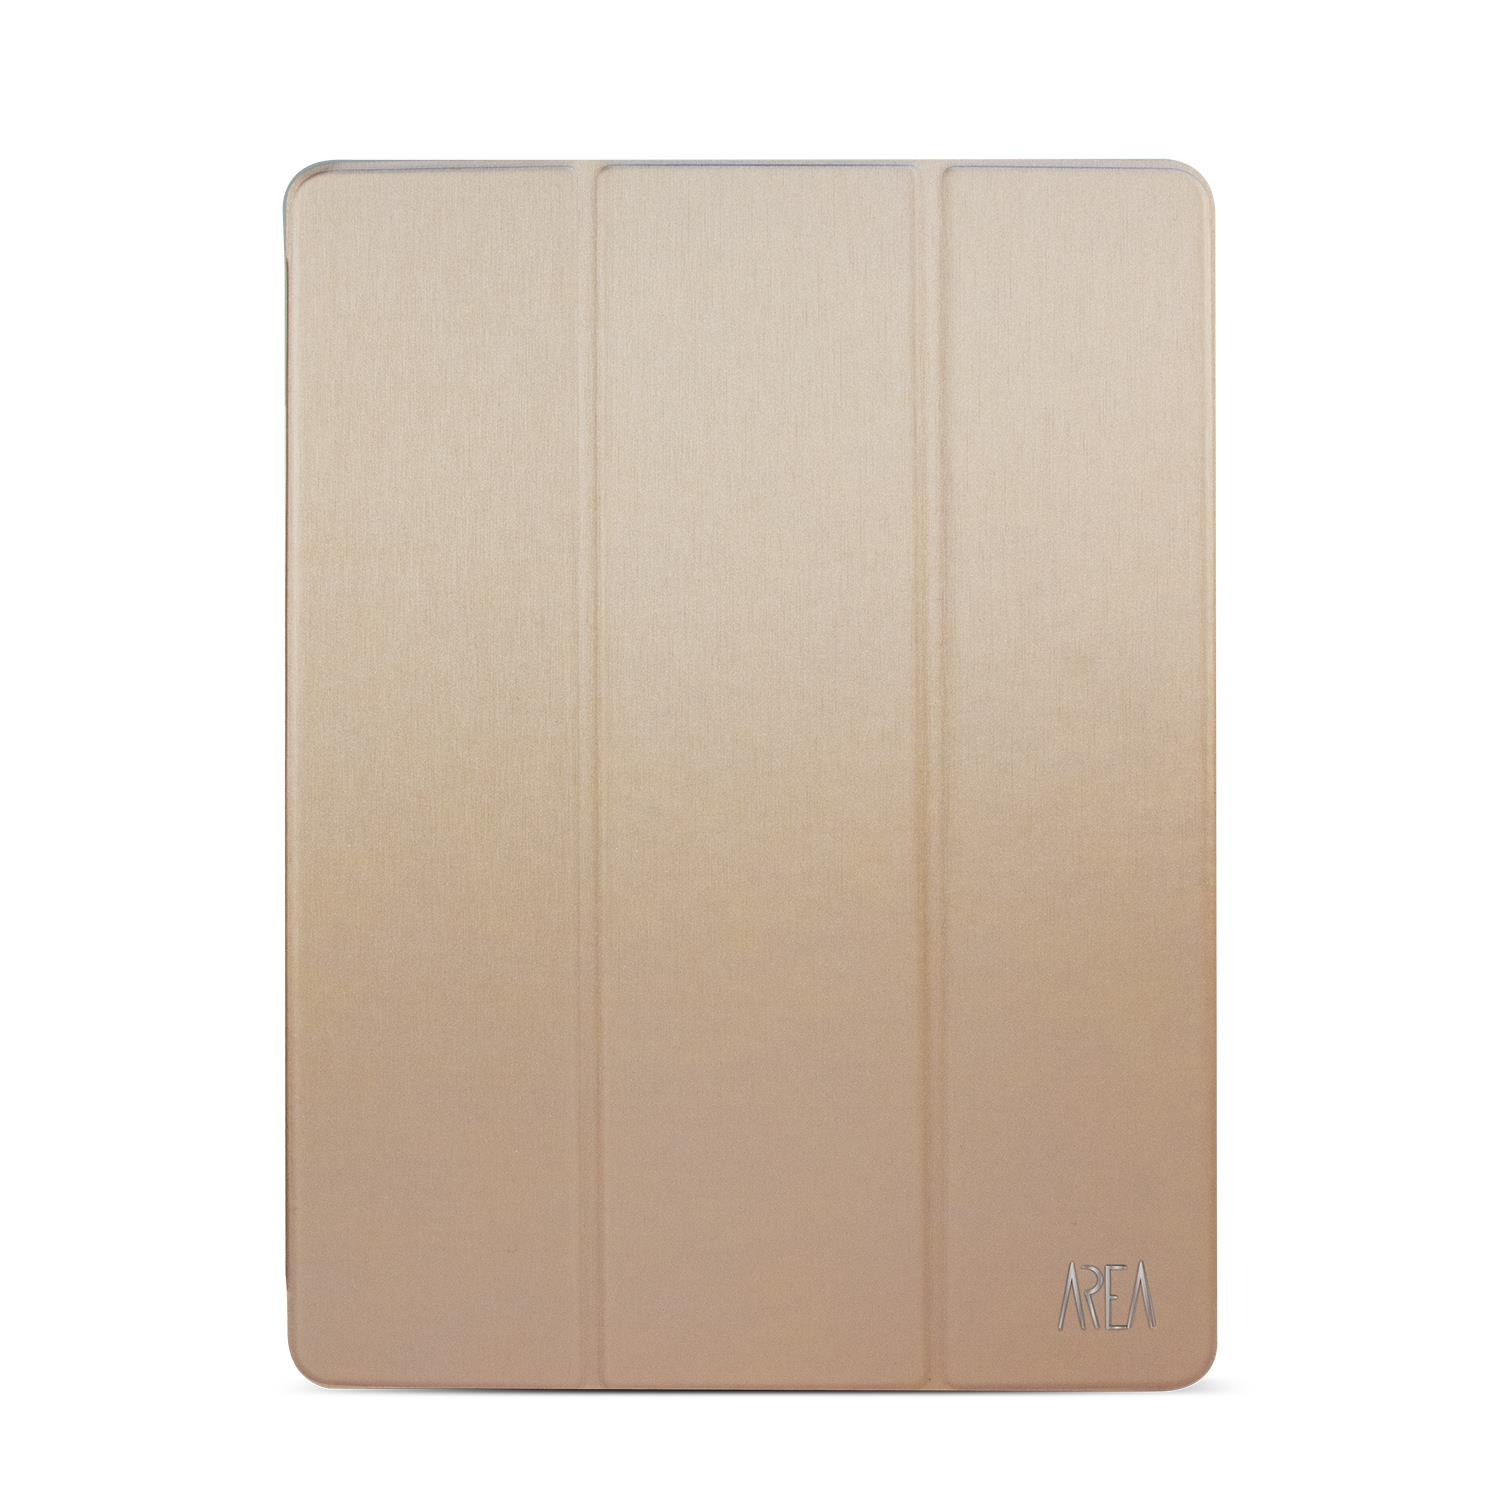 AREA CUSTODIA AREA IPAD PRO 9.7 ECOPELLE ORO